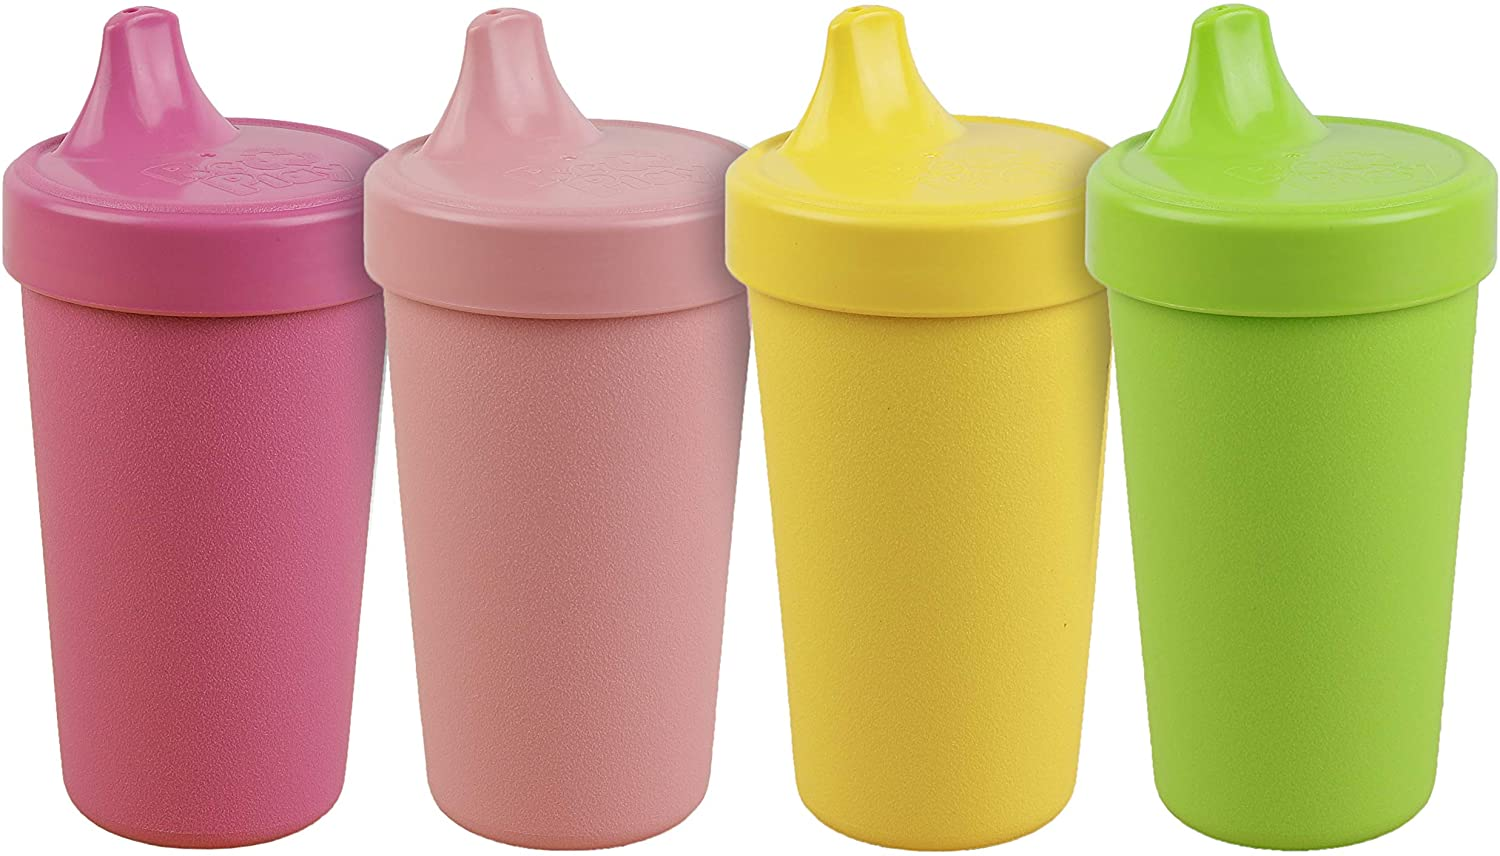 RE-PLAY 4pk - 10 oz. No Spill Cups Mail order Baby Sippy National products Toddler and for